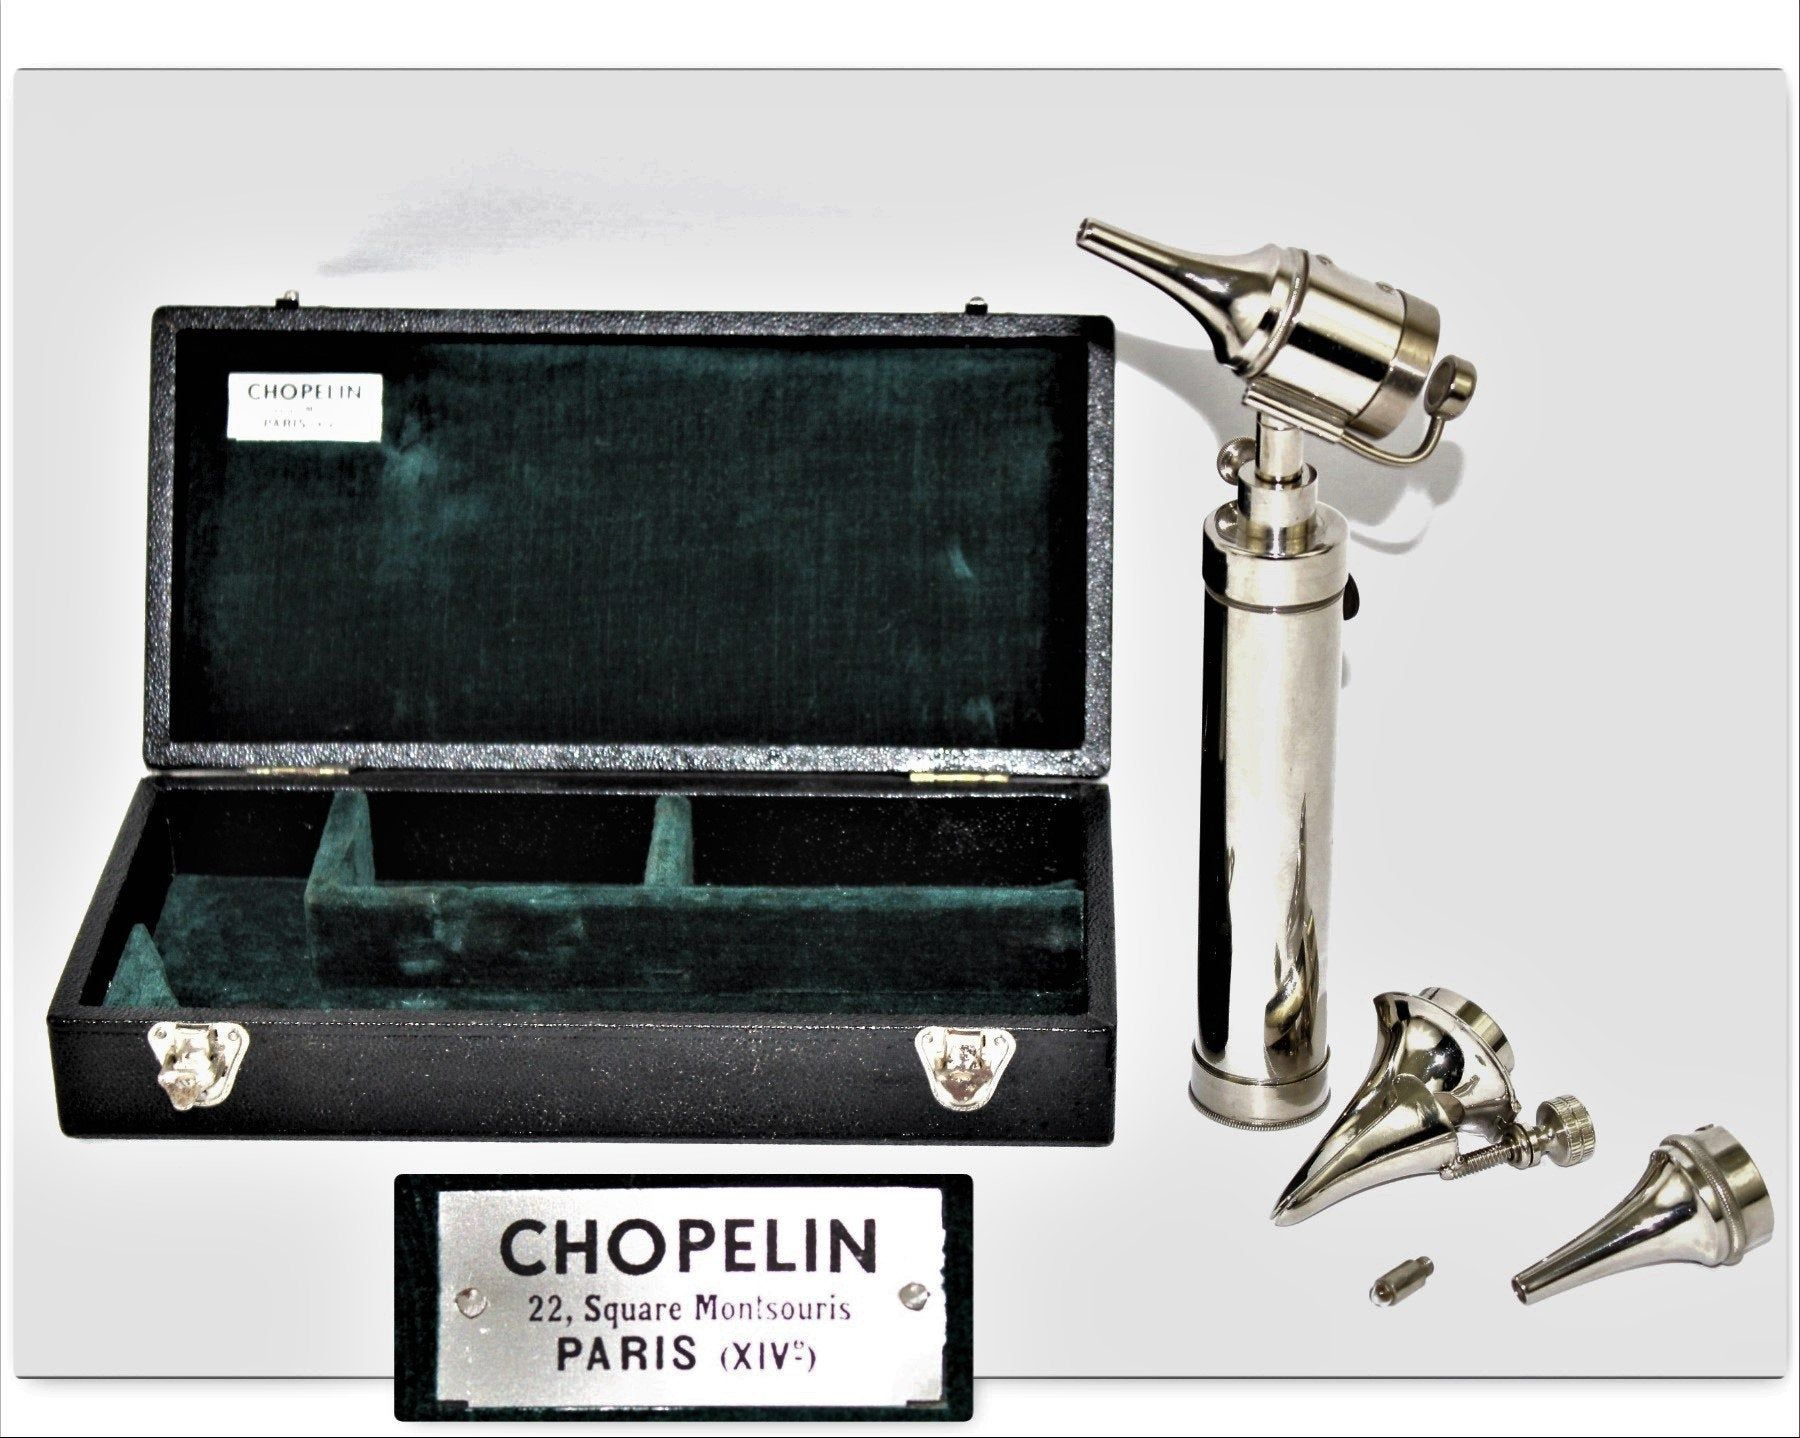 Vintage Medical Equipment French Chopelin Otoscope